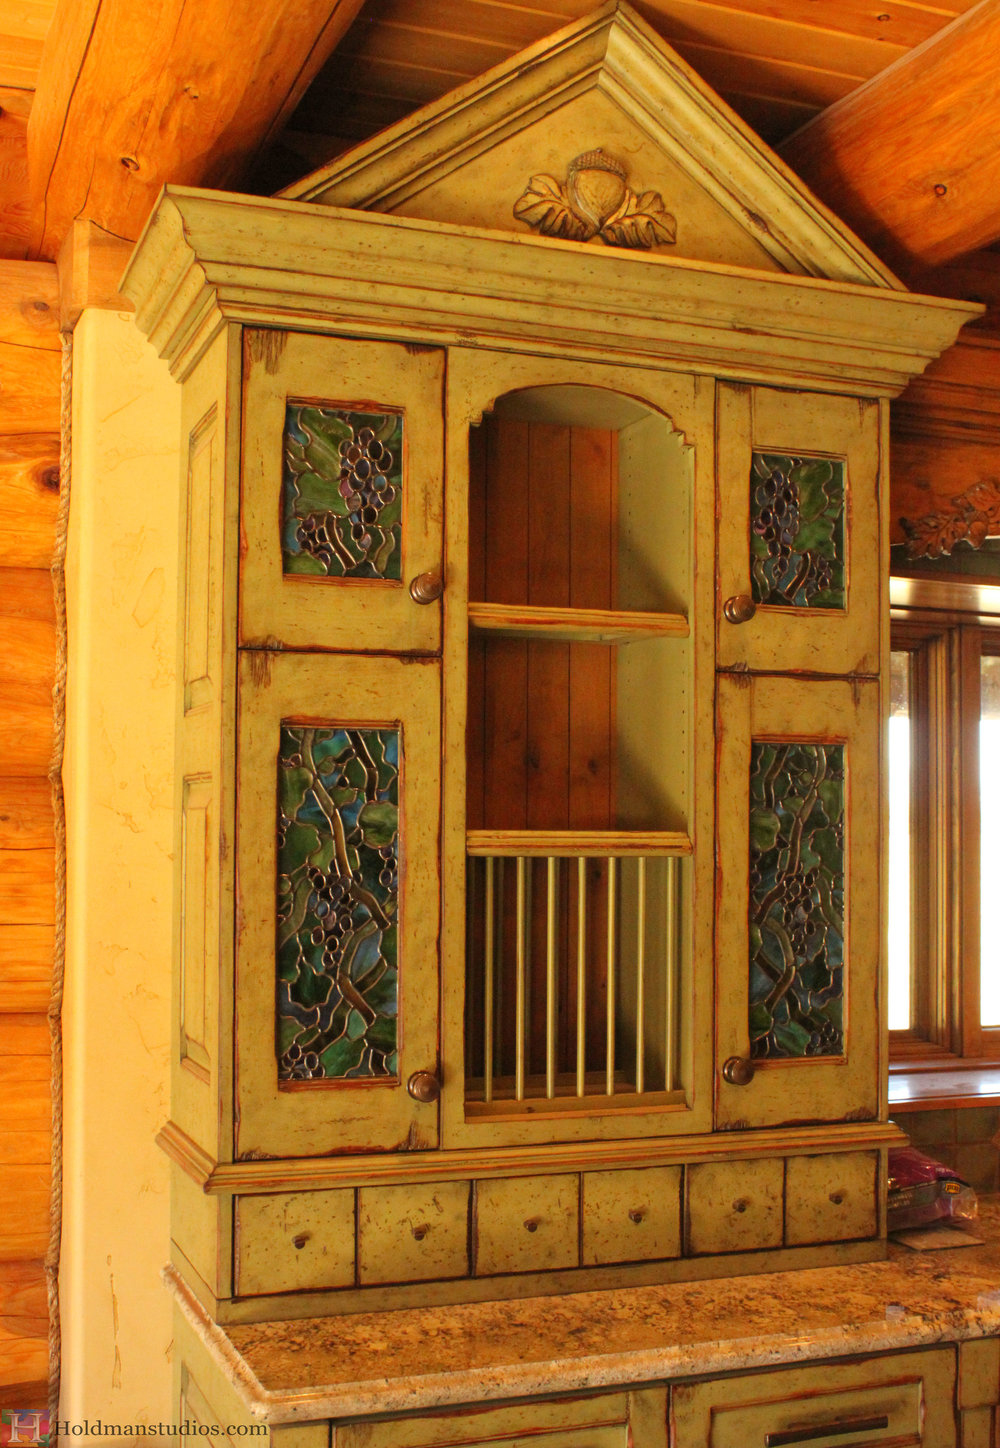 unfinished kitchen cabinet with stained glass door windows of grape vines created by artists under the direction of tom holdman at holdman studios